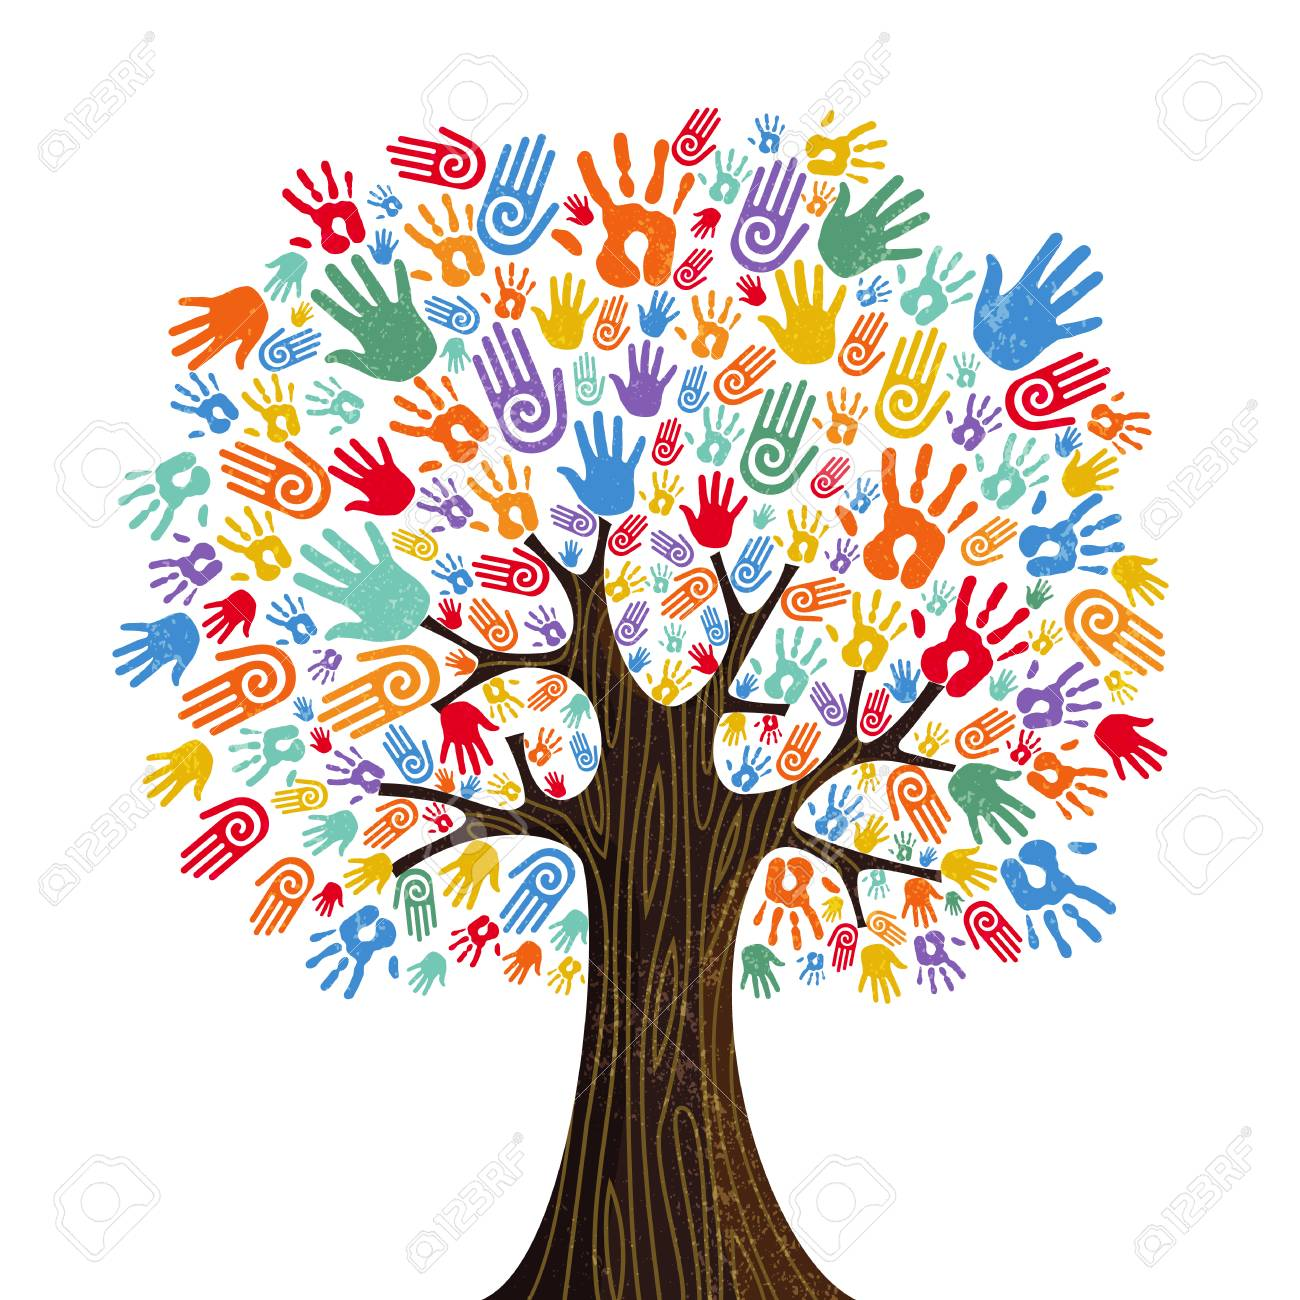 Tree with colorful human hands together. Community team concept illustration for culture diversity, nature care or teamwork project. vector. - 103830646